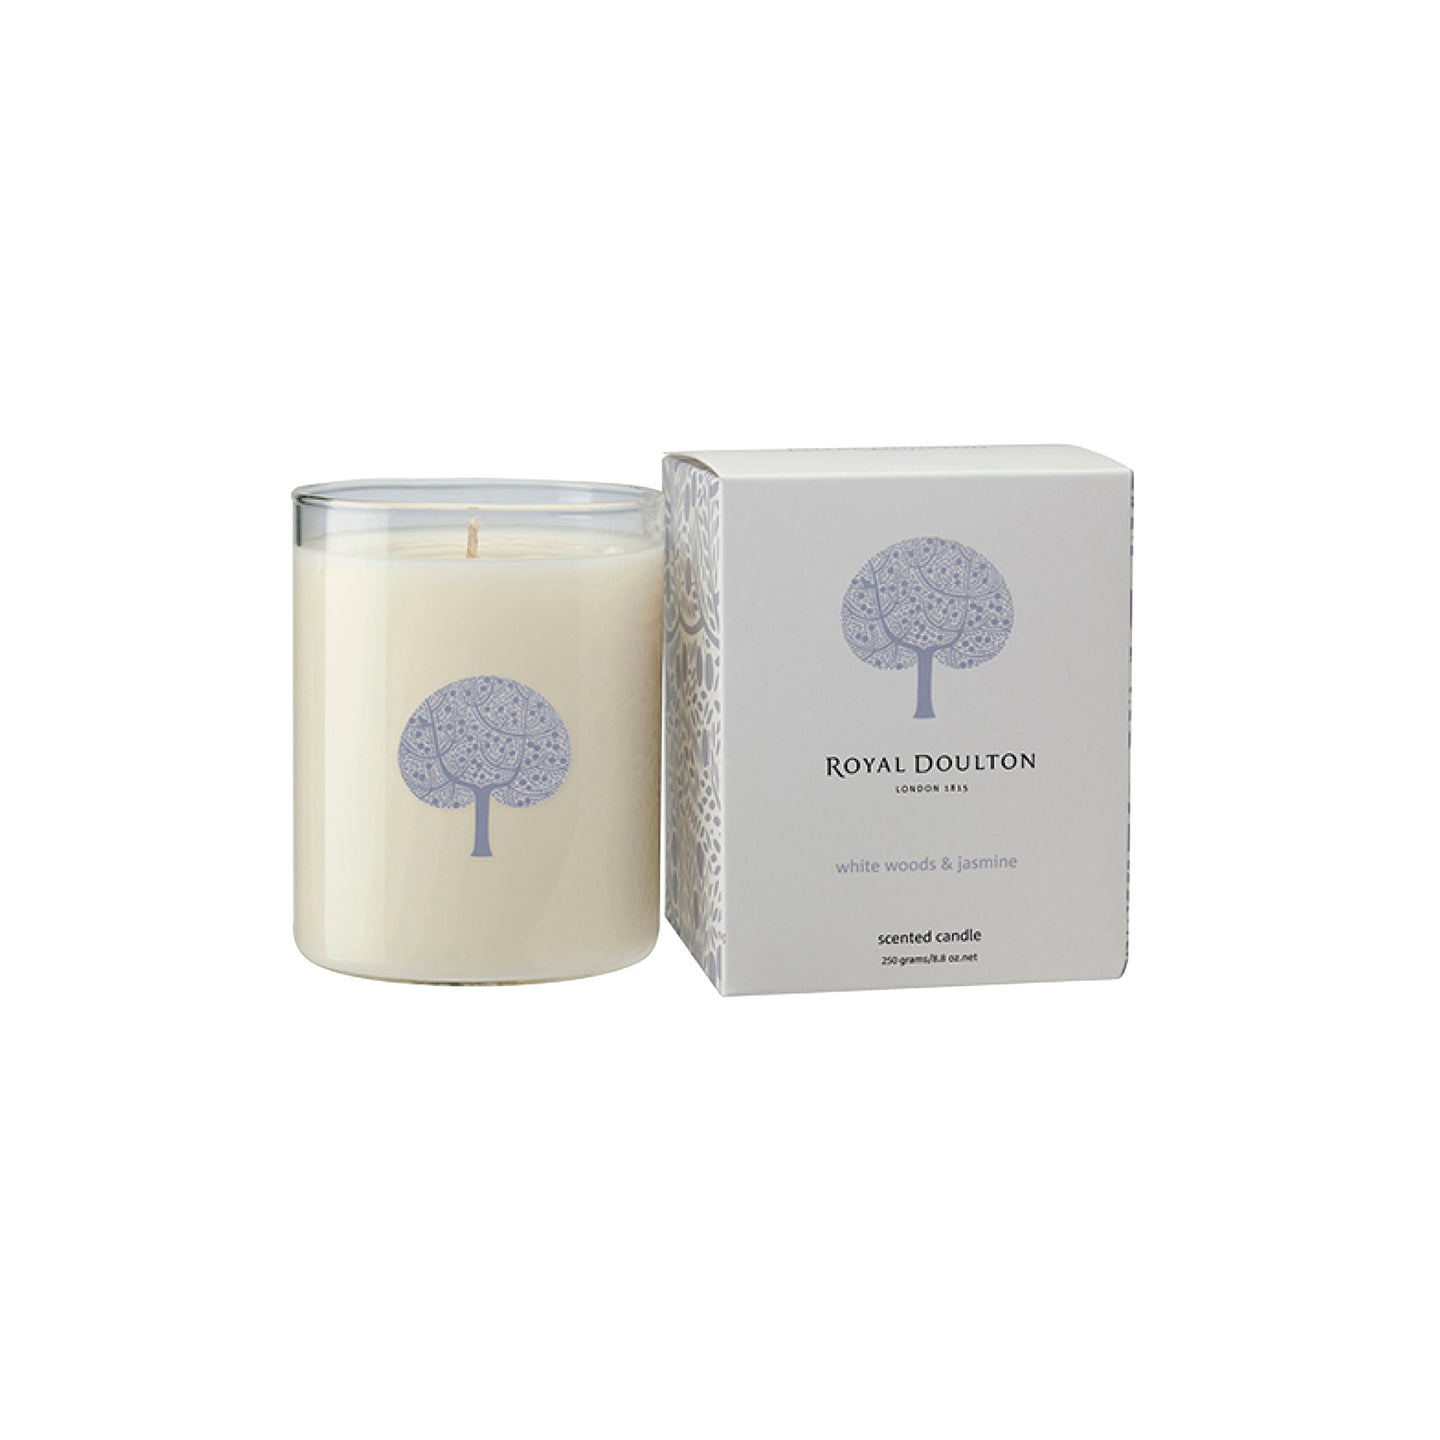 Royal Doulton Fable Candle- Whitewoods & Jasmine